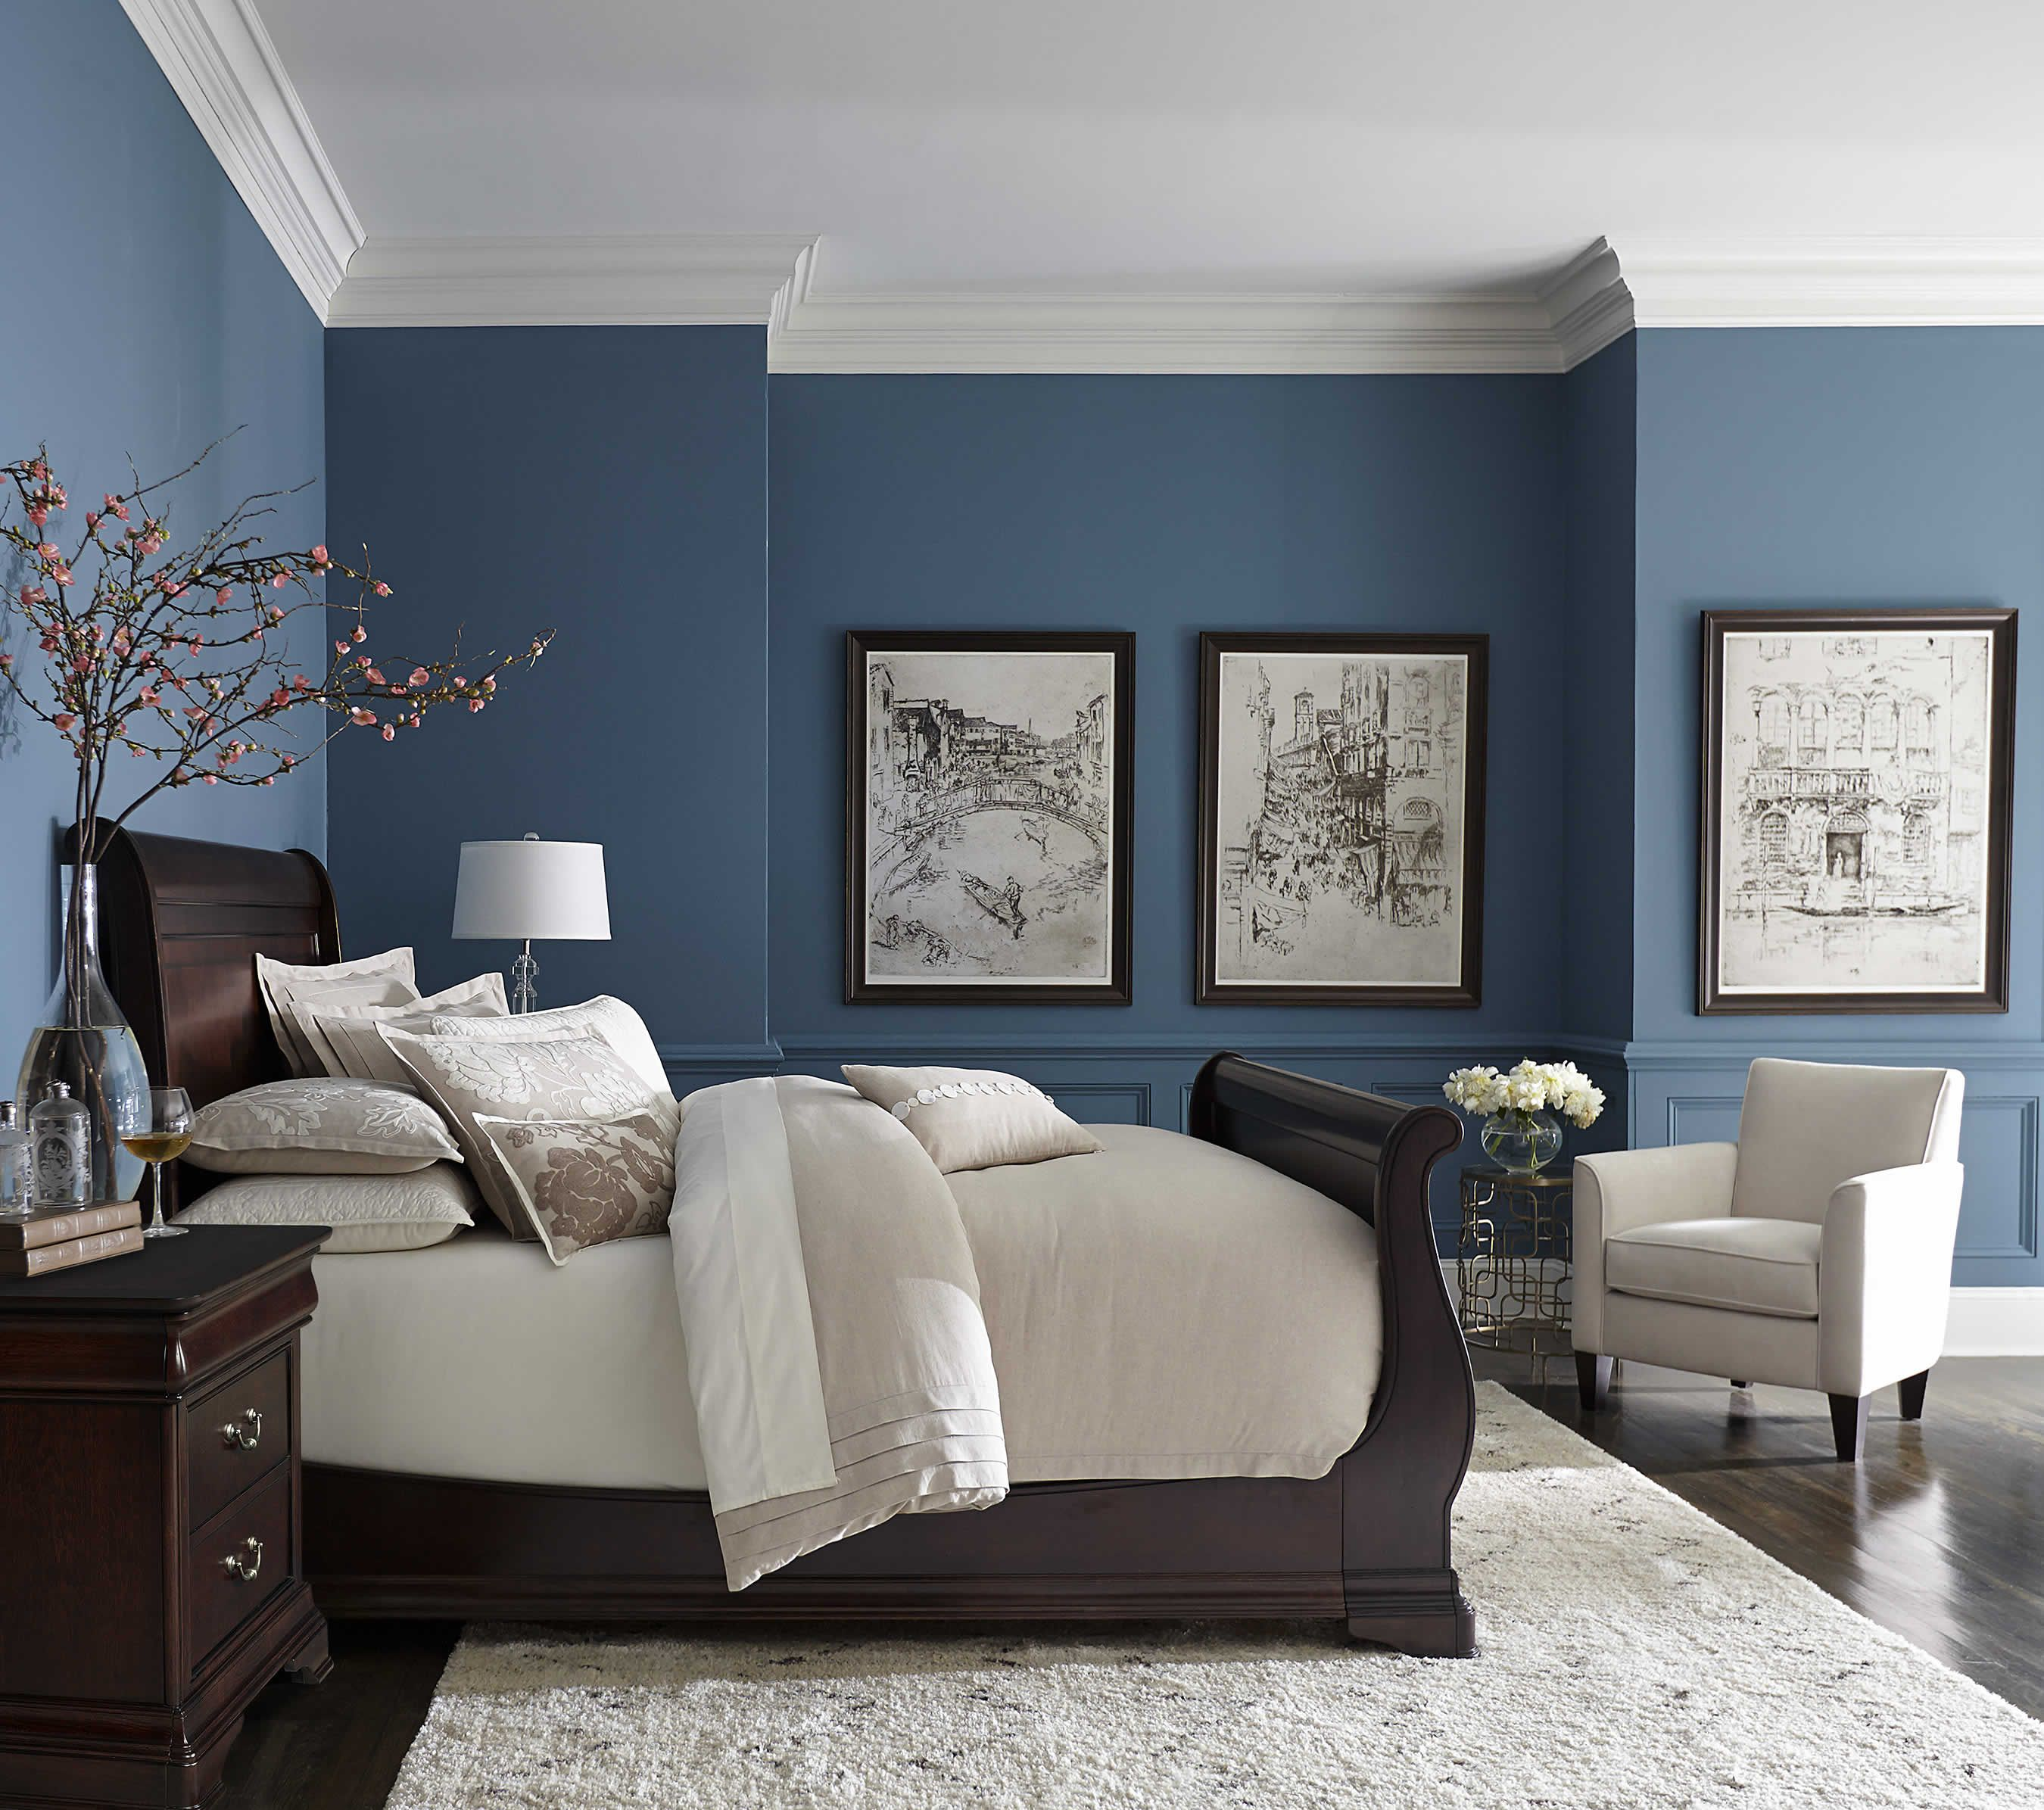 grey and blue bedroom ideas – zlotows.info